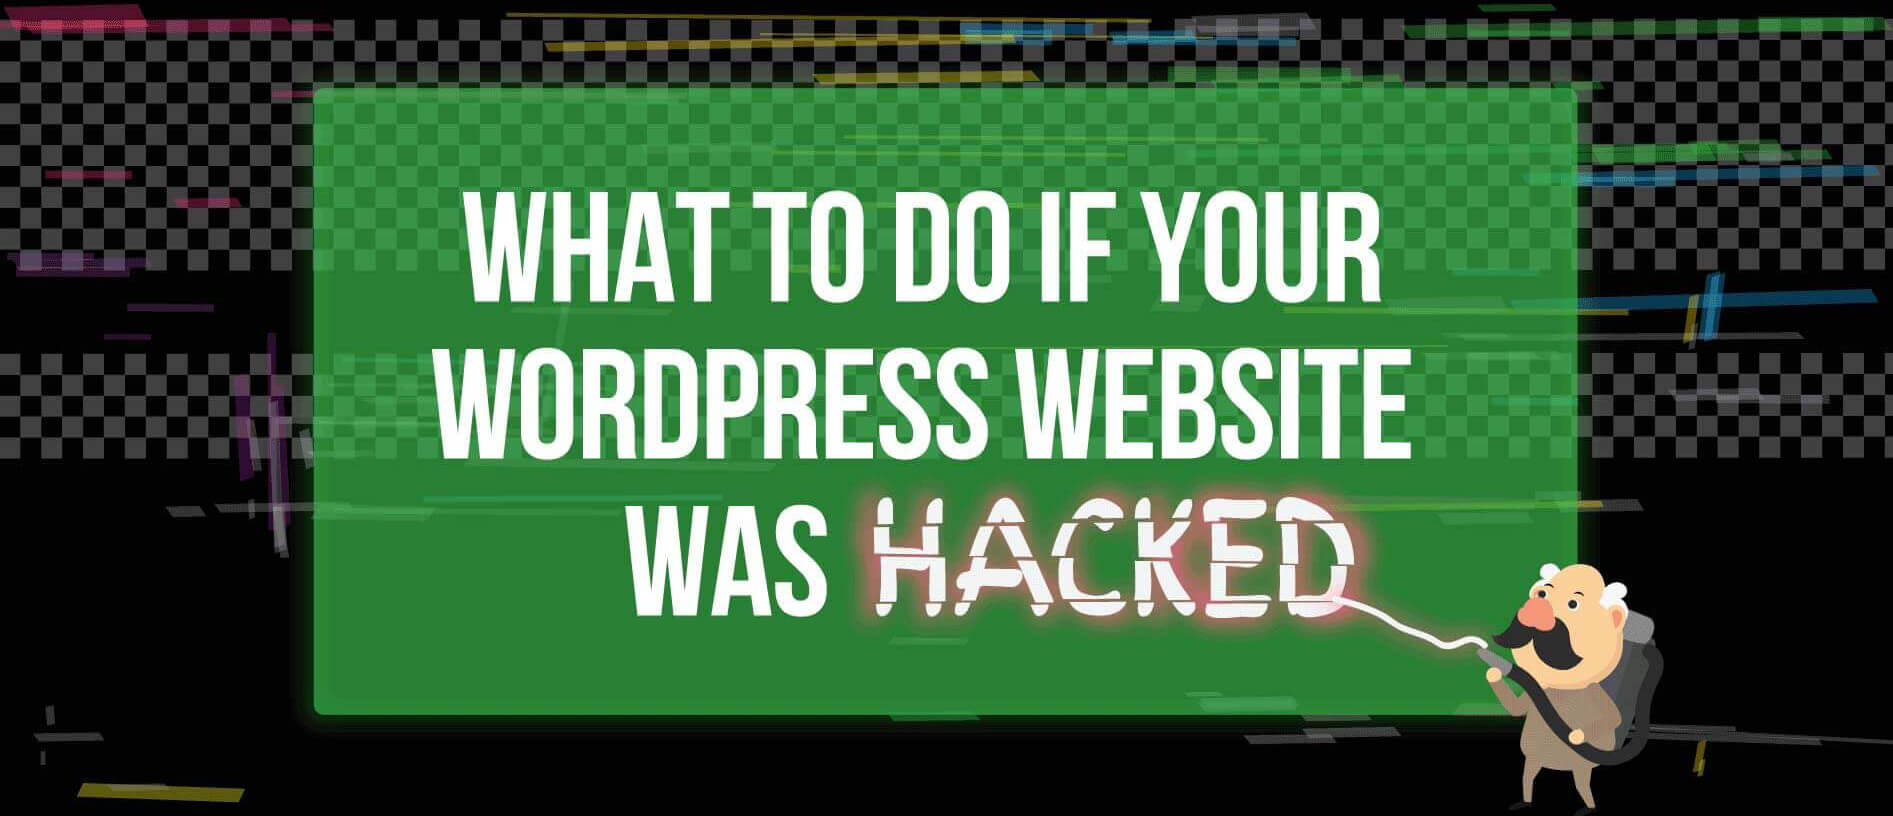 Infographic: What to Do if Your WordPress Website Was Hacked